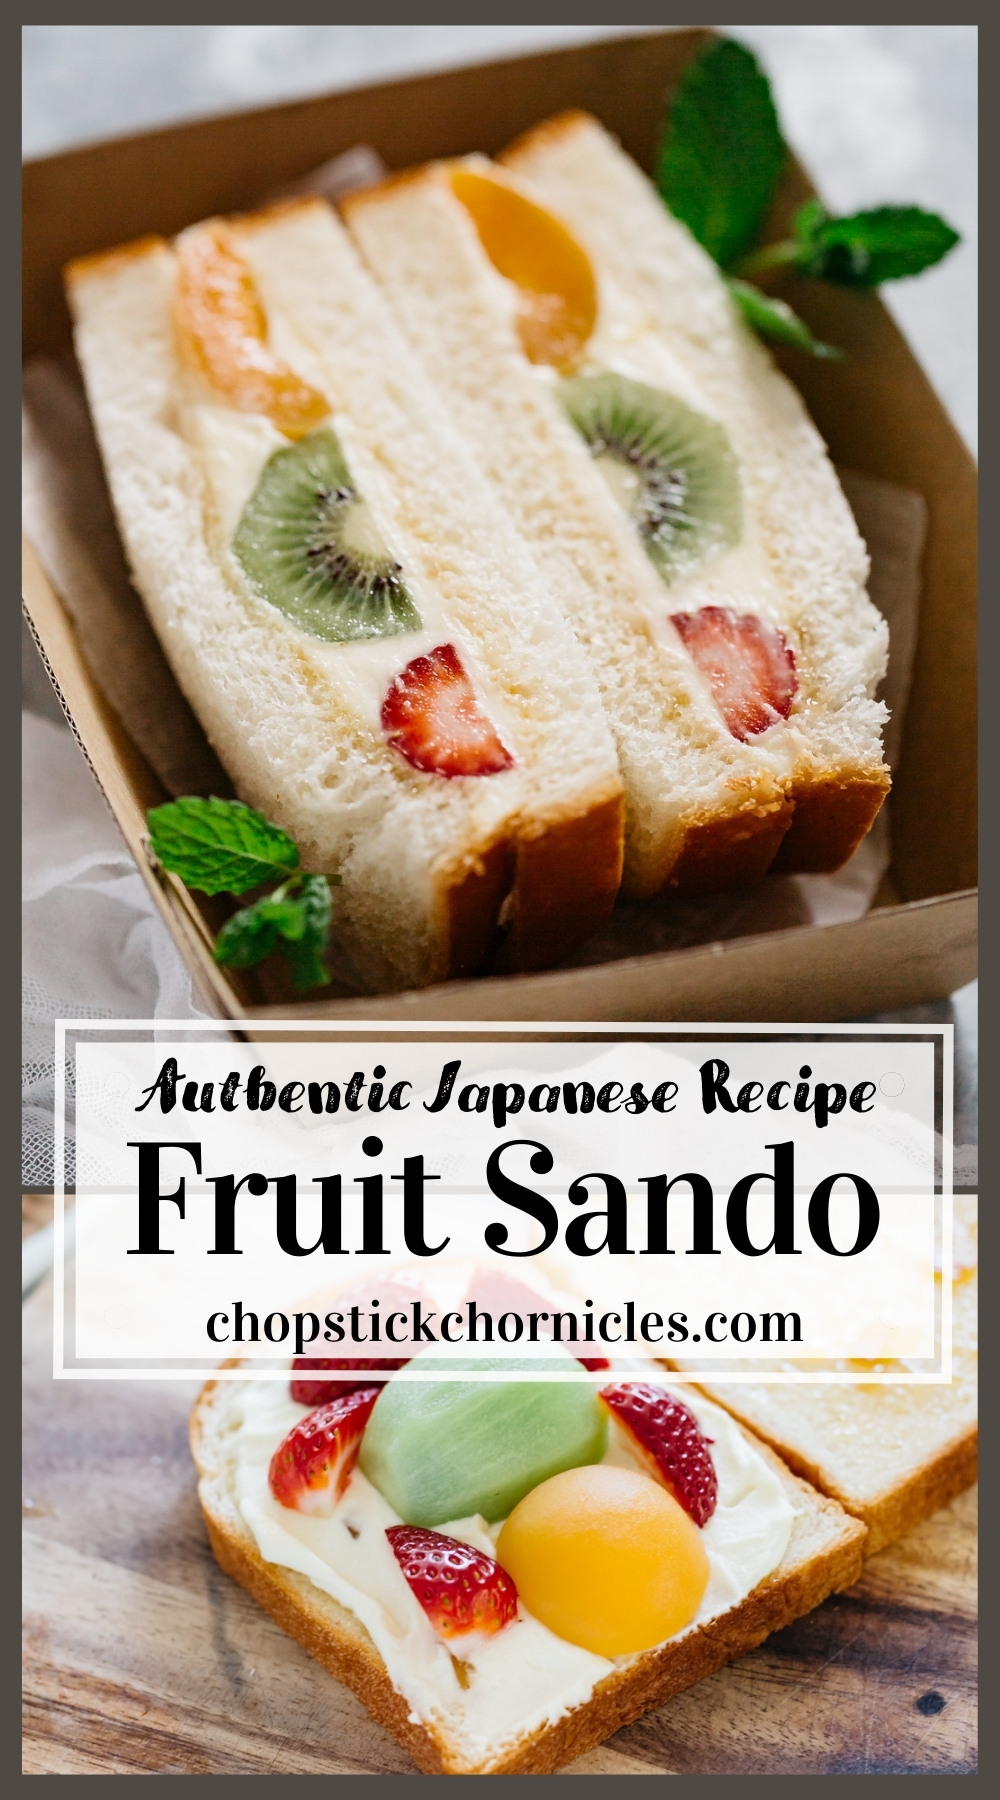 fruit sando images for pinterest share with text overlay